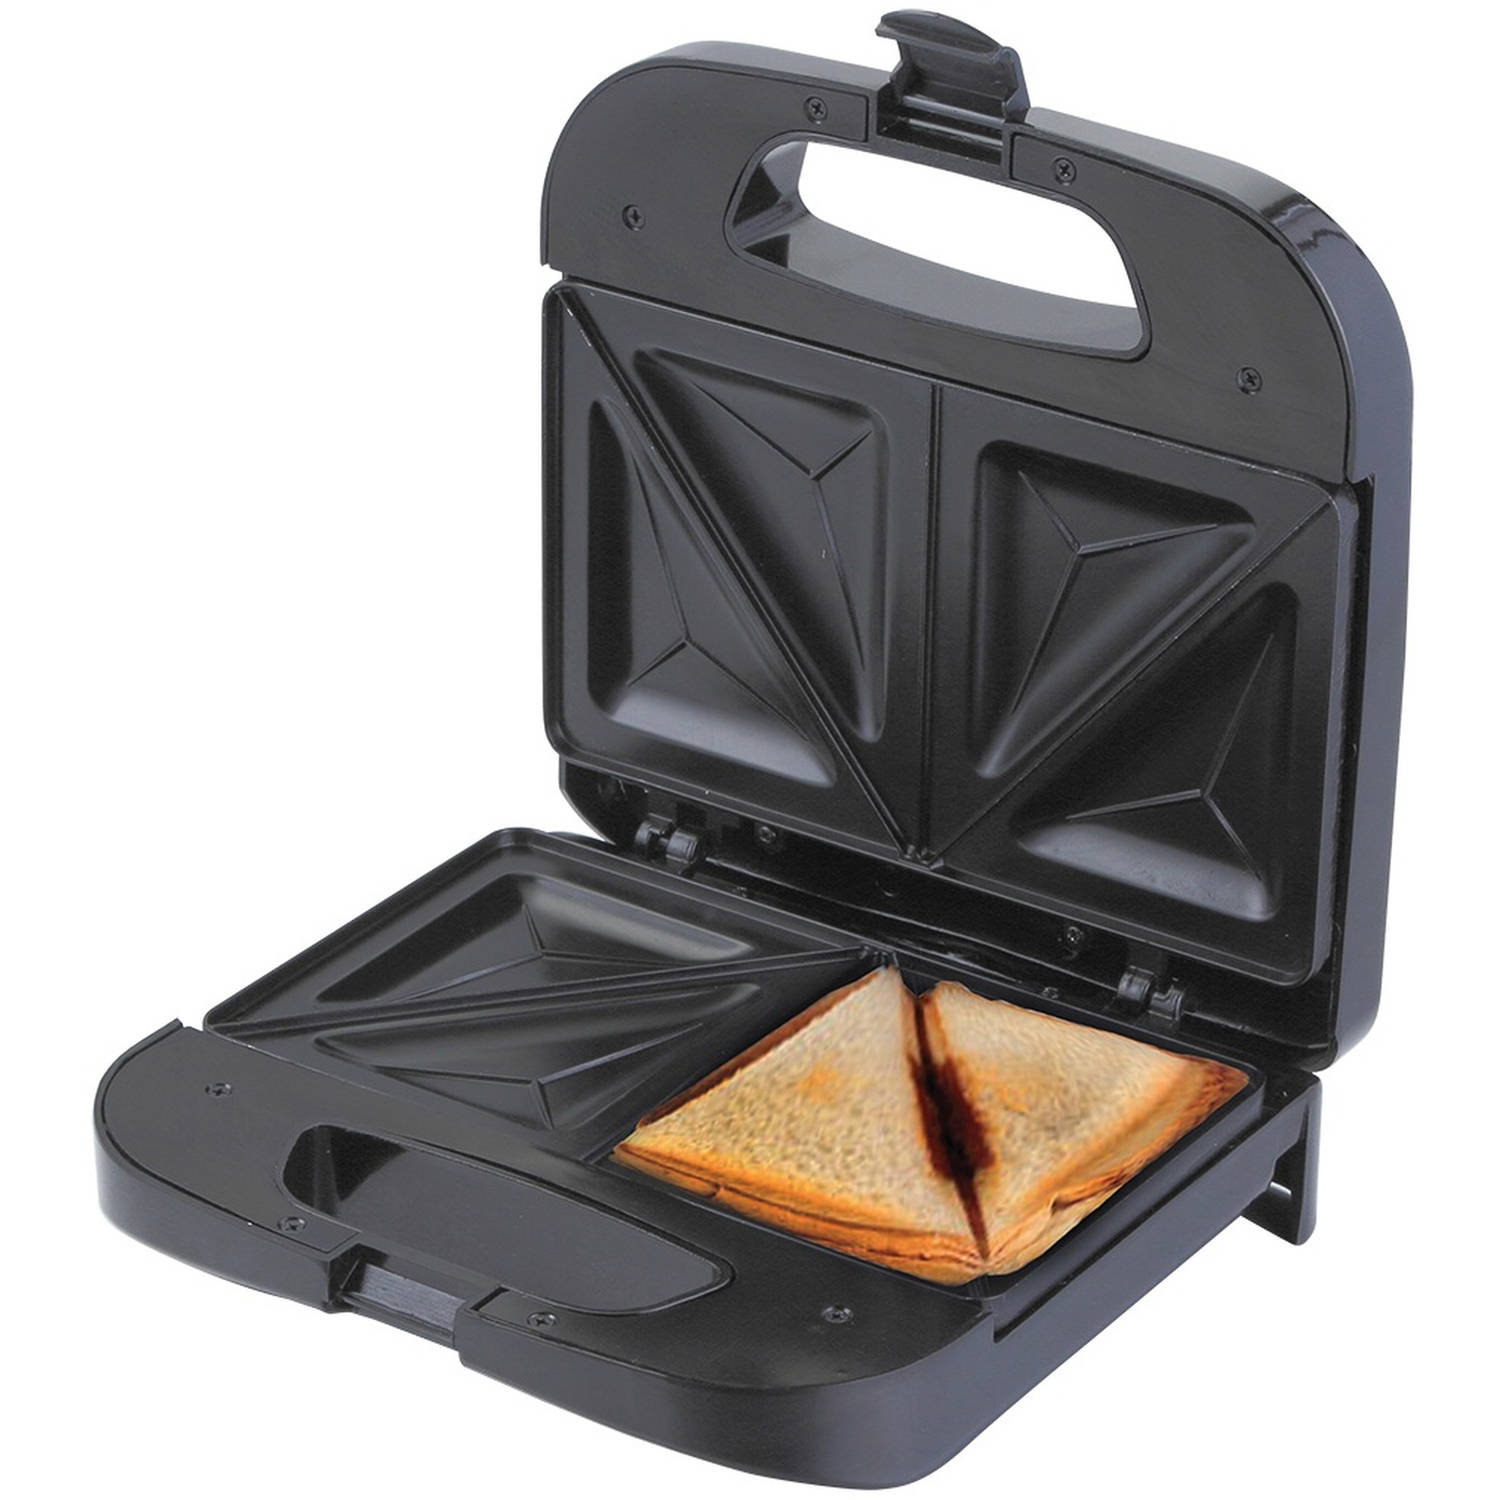 Chefman Sandwich Maker, Black